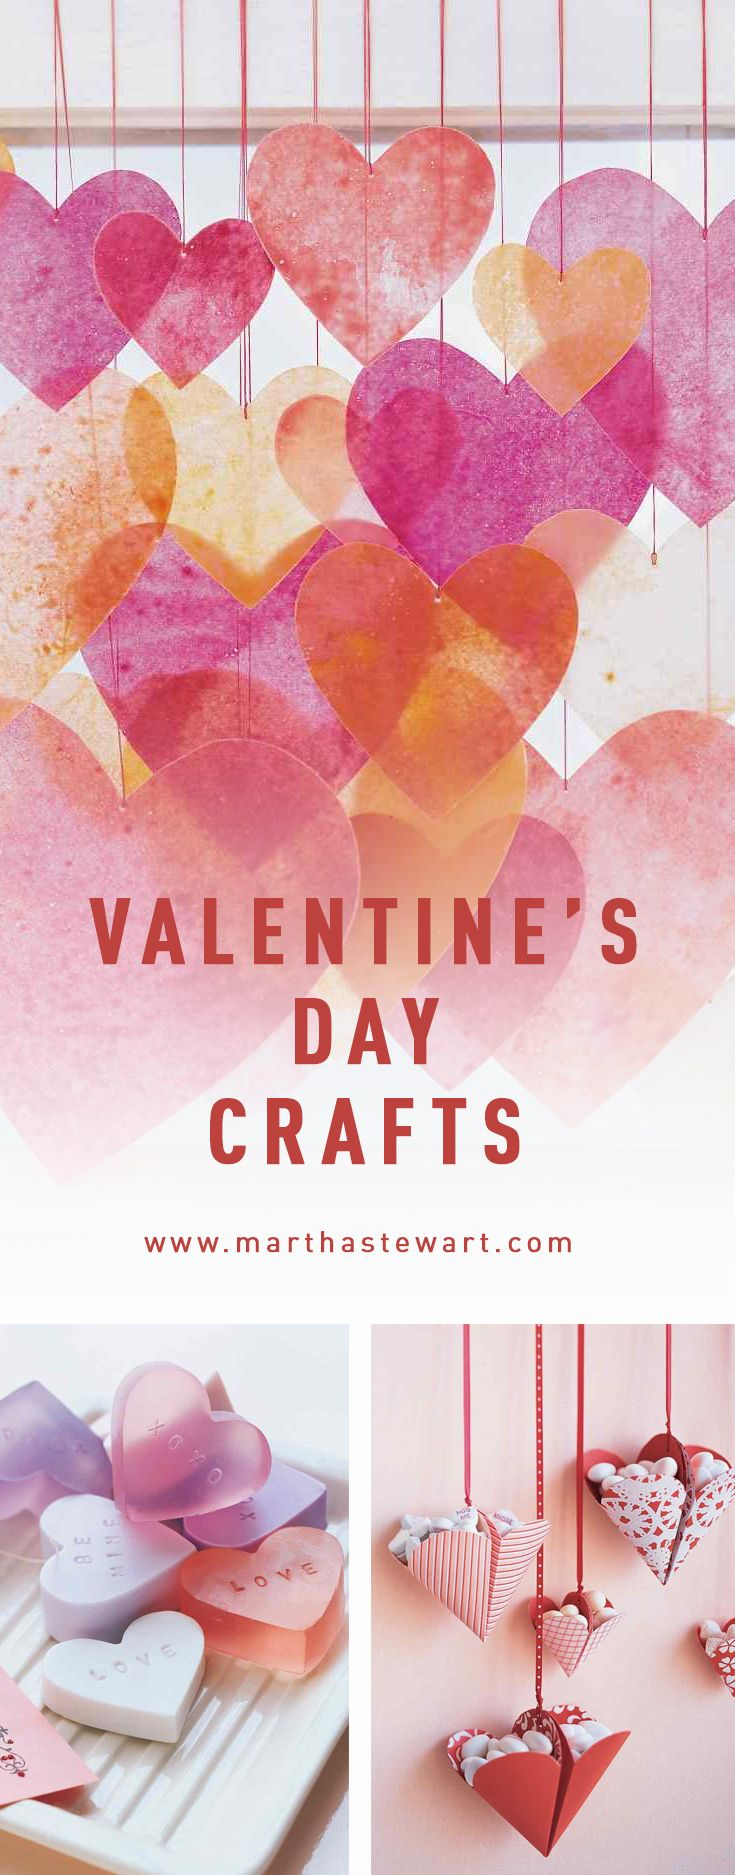 Valentine's Day Crafts | Martha Stewart Living - Show your valentine some DIY love with our heartfelt crafts.